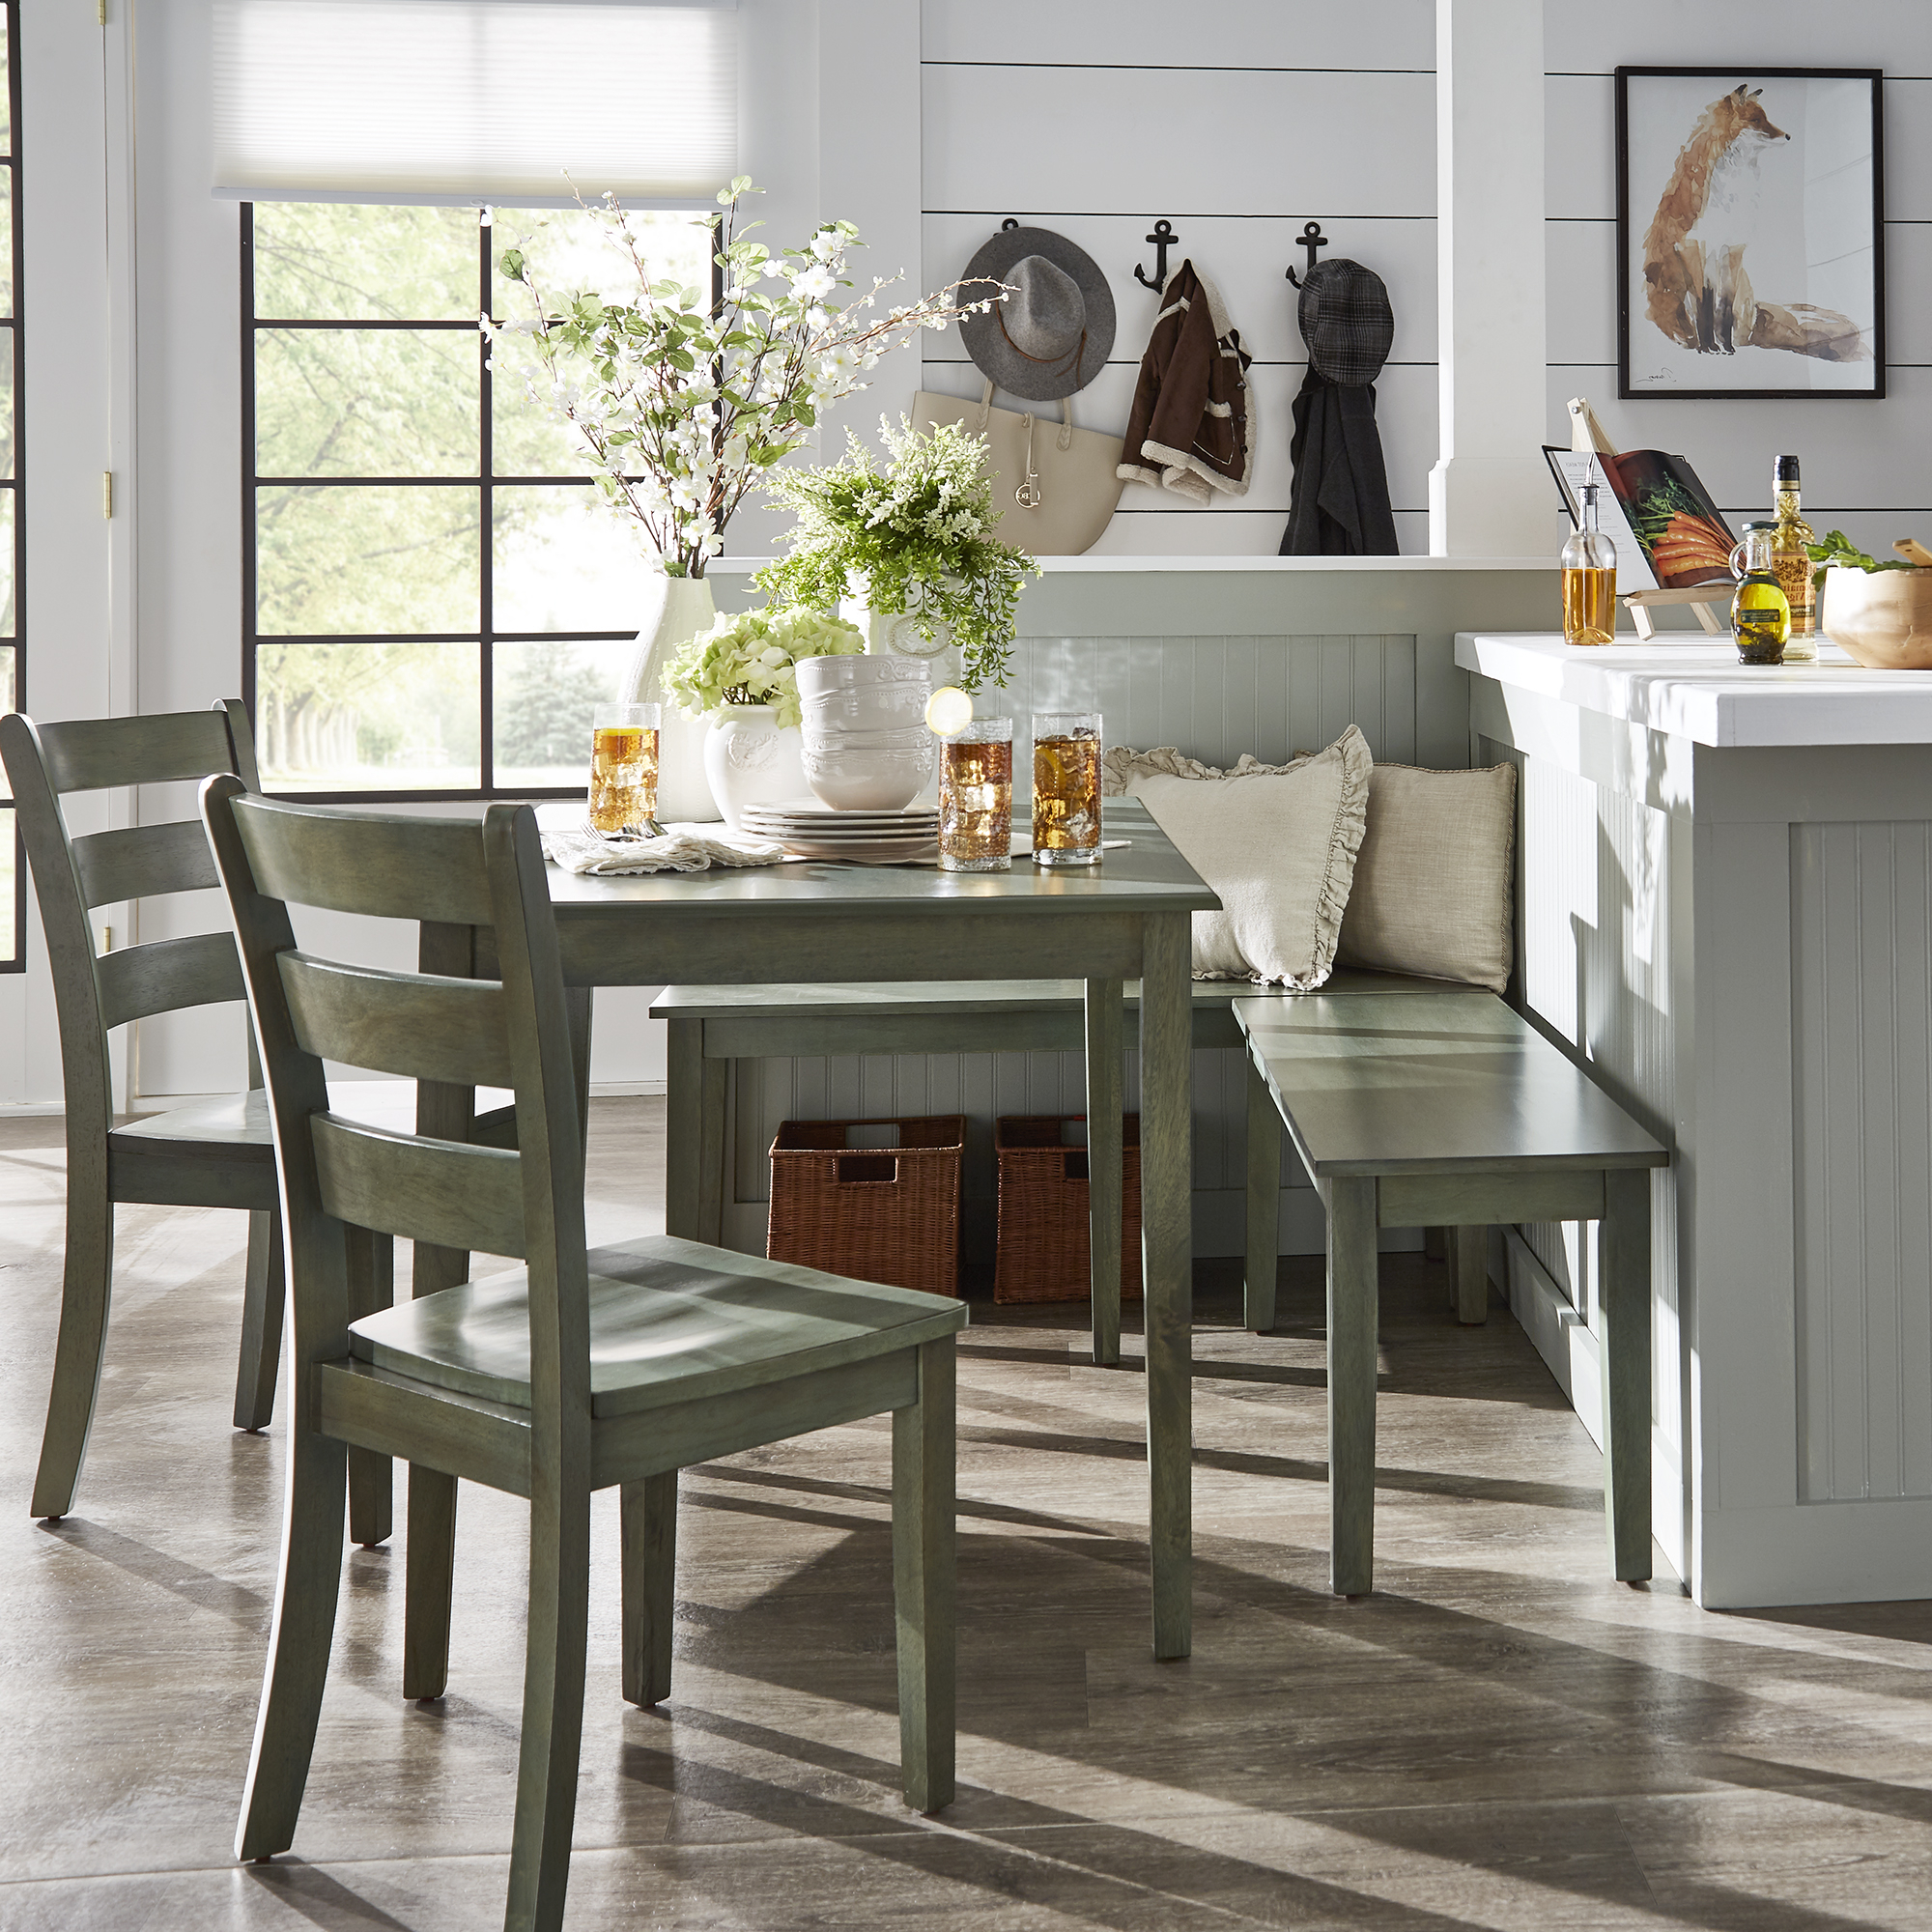 5 Piece Breakfast Nook Dining Sets With Most Popular Weston Home Lexington 5 Piece Breakfast Nook Dining Set, Rectangular Table, Multiple Colors (Gallery 5 of 20)